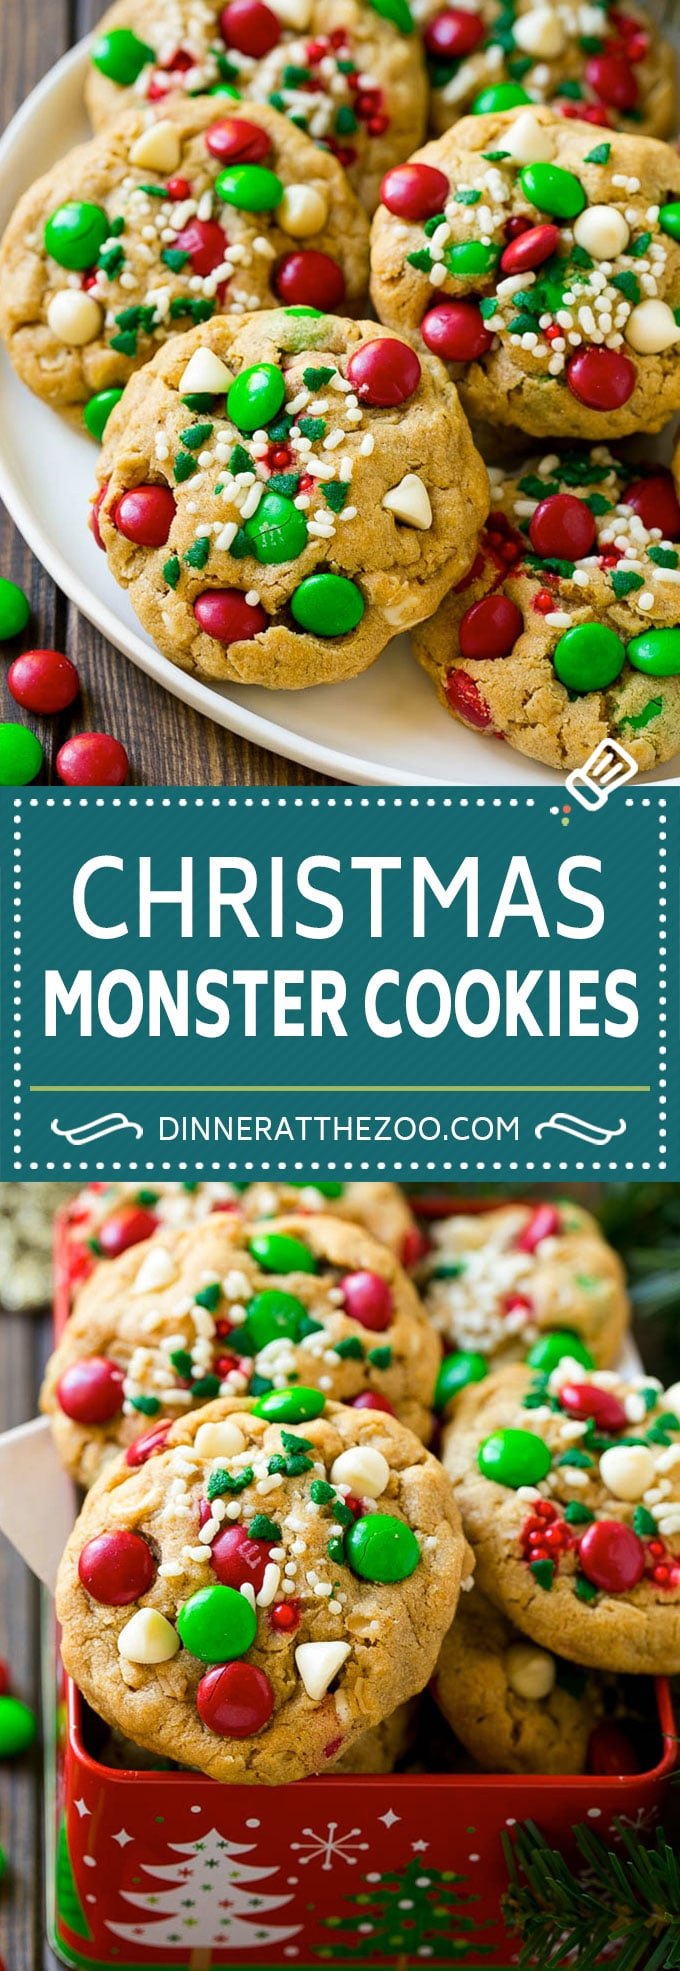 Christmas Oatmeal Cookies  Monster Cookies Christmas Version Dinner at the Zoo